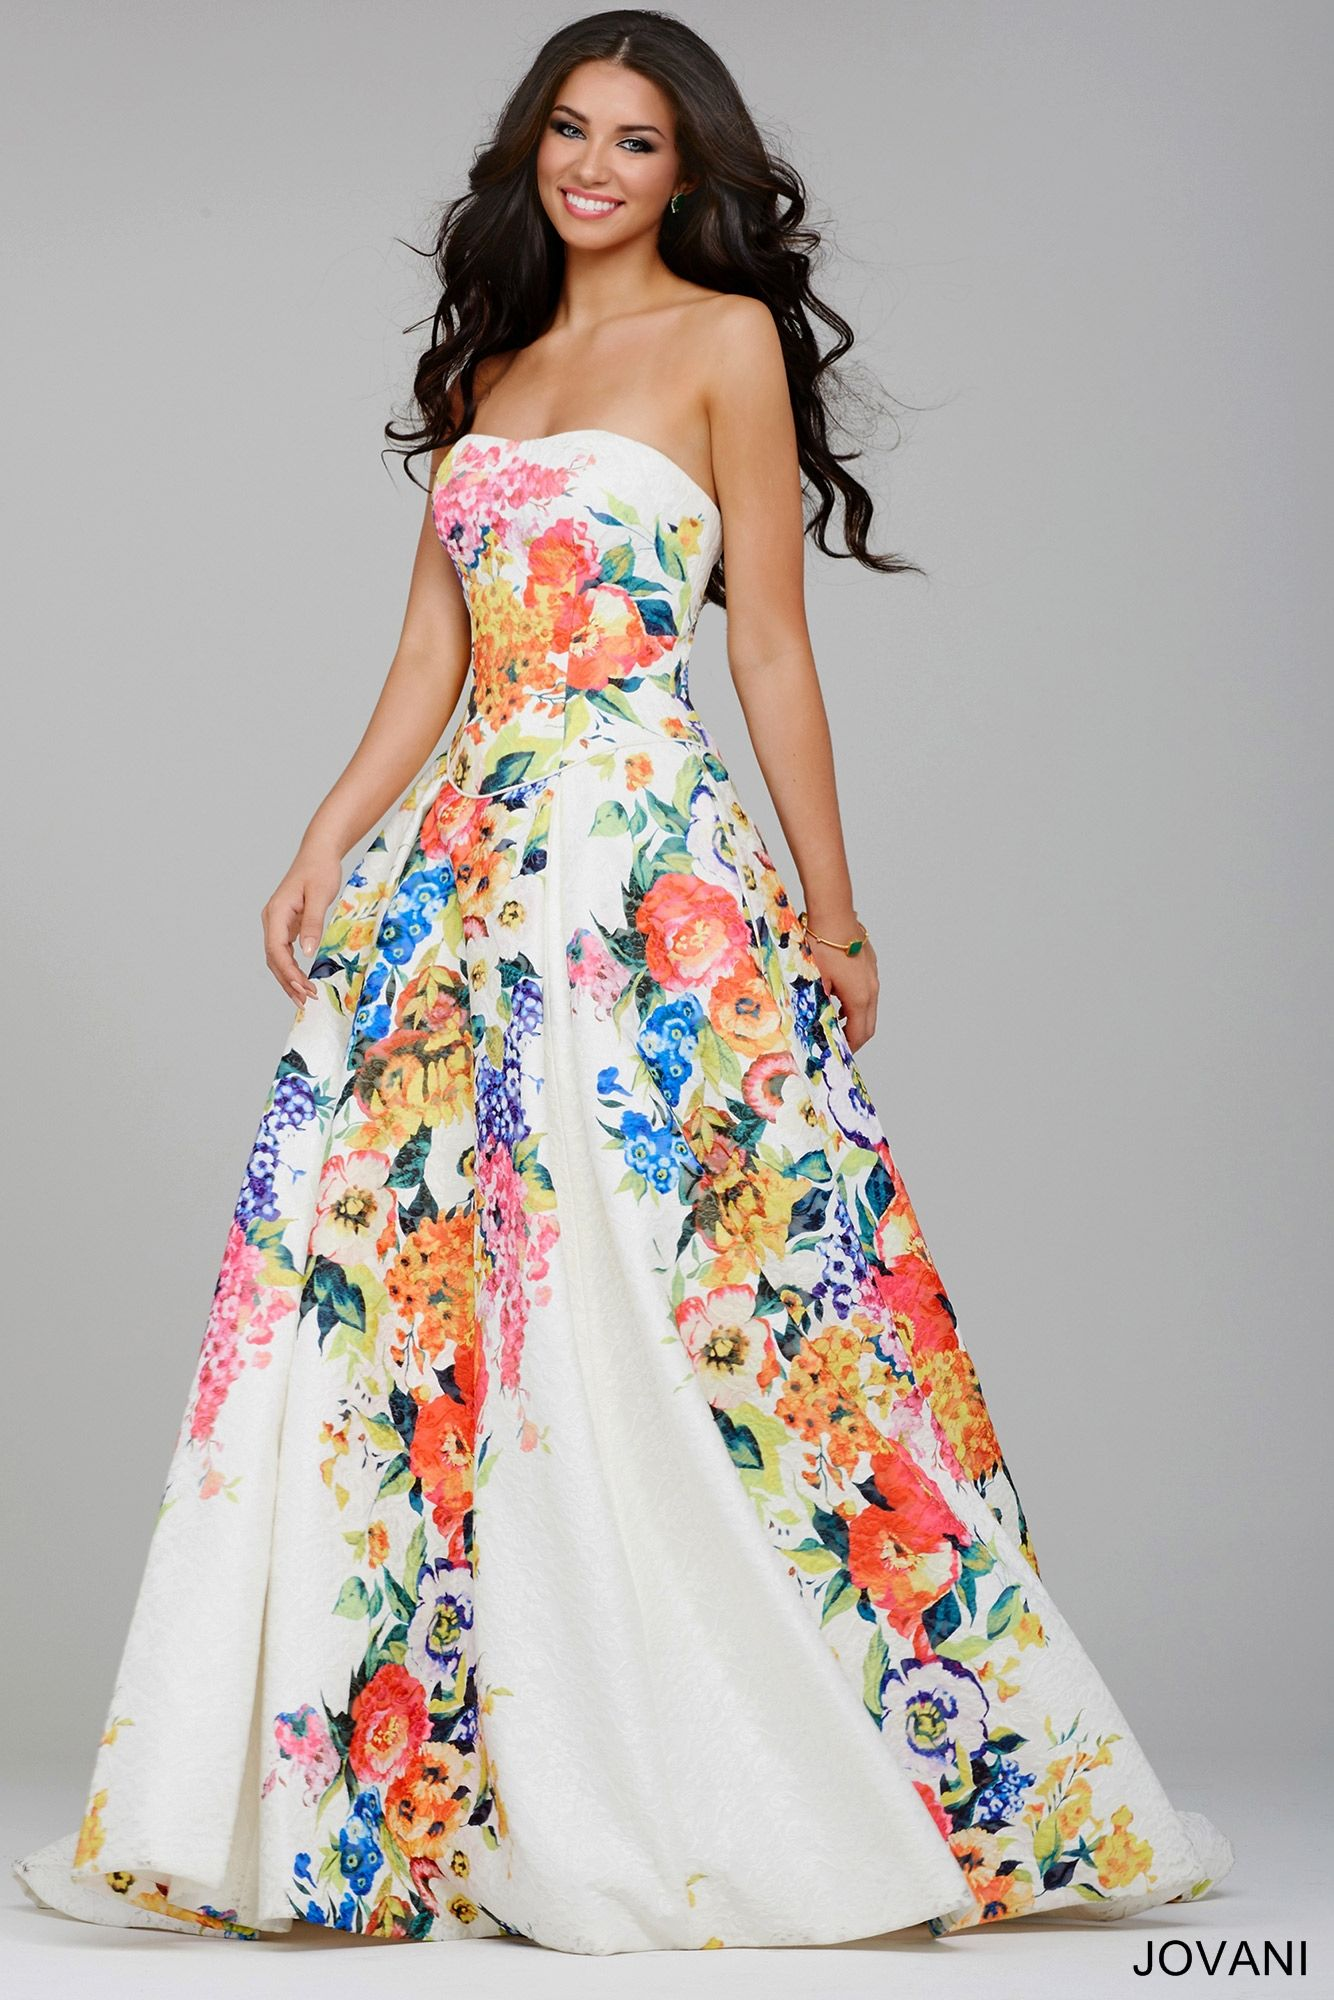 Gorgeous strapless floral ballgown with a drop waist and full box